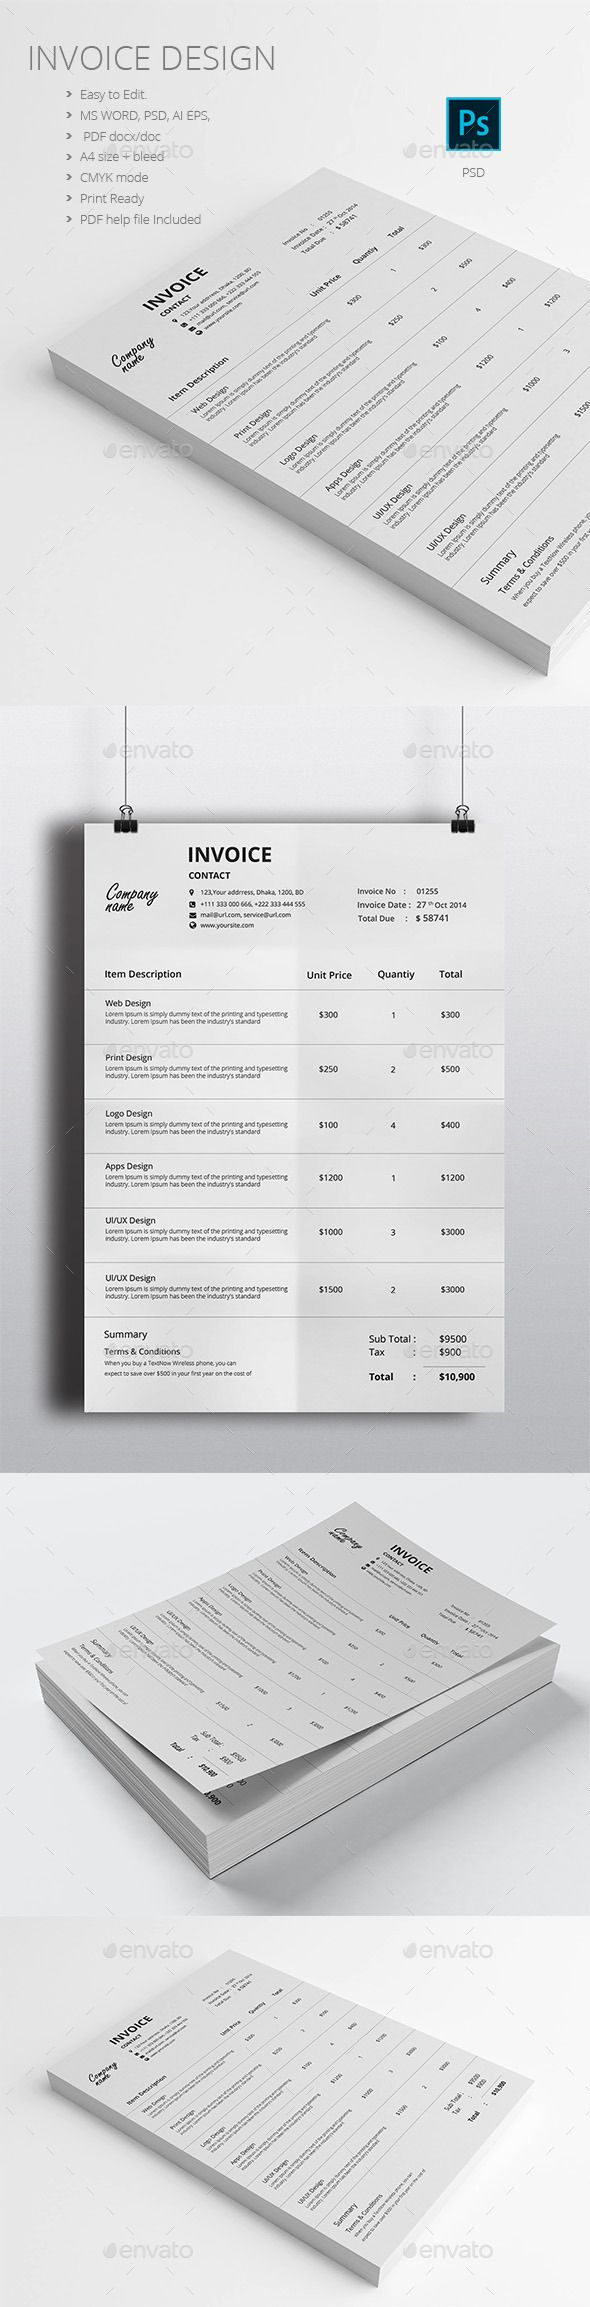 28 best JL images on Pinterest   Invoice layout  Calculus and Graphics Invoice Template  design Download  http   graphicriver net item